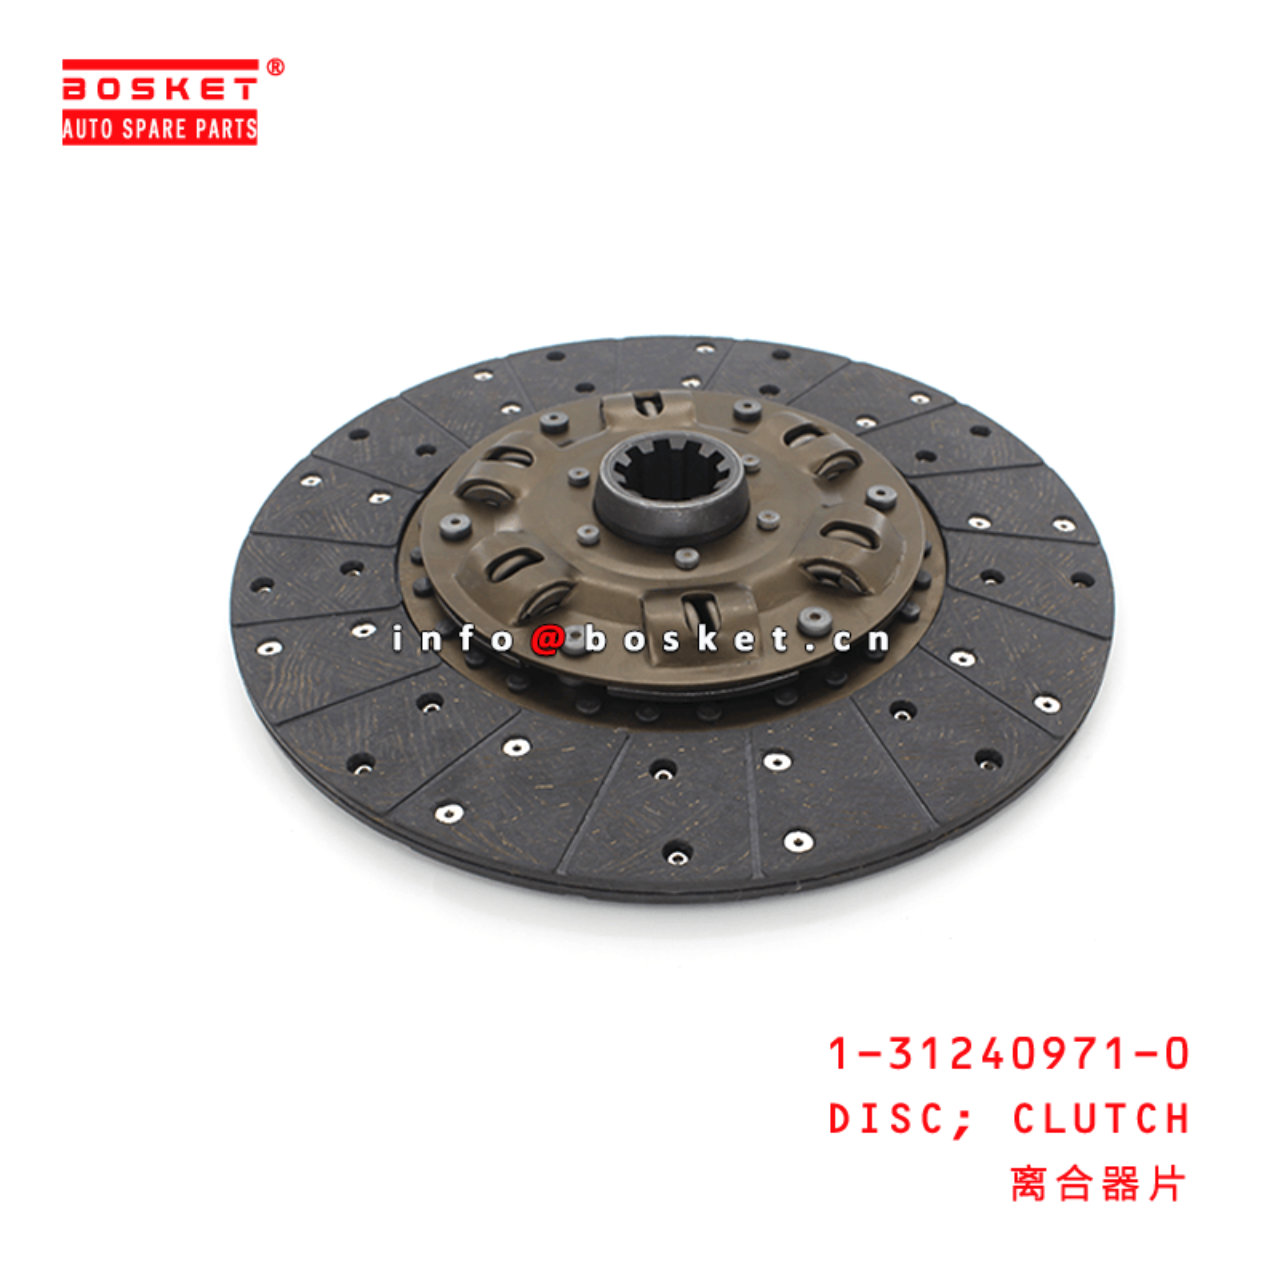 1-31240971-0 Clutch Disc 1312409710 Suitable for ISUZU F Series Truck 6HH1